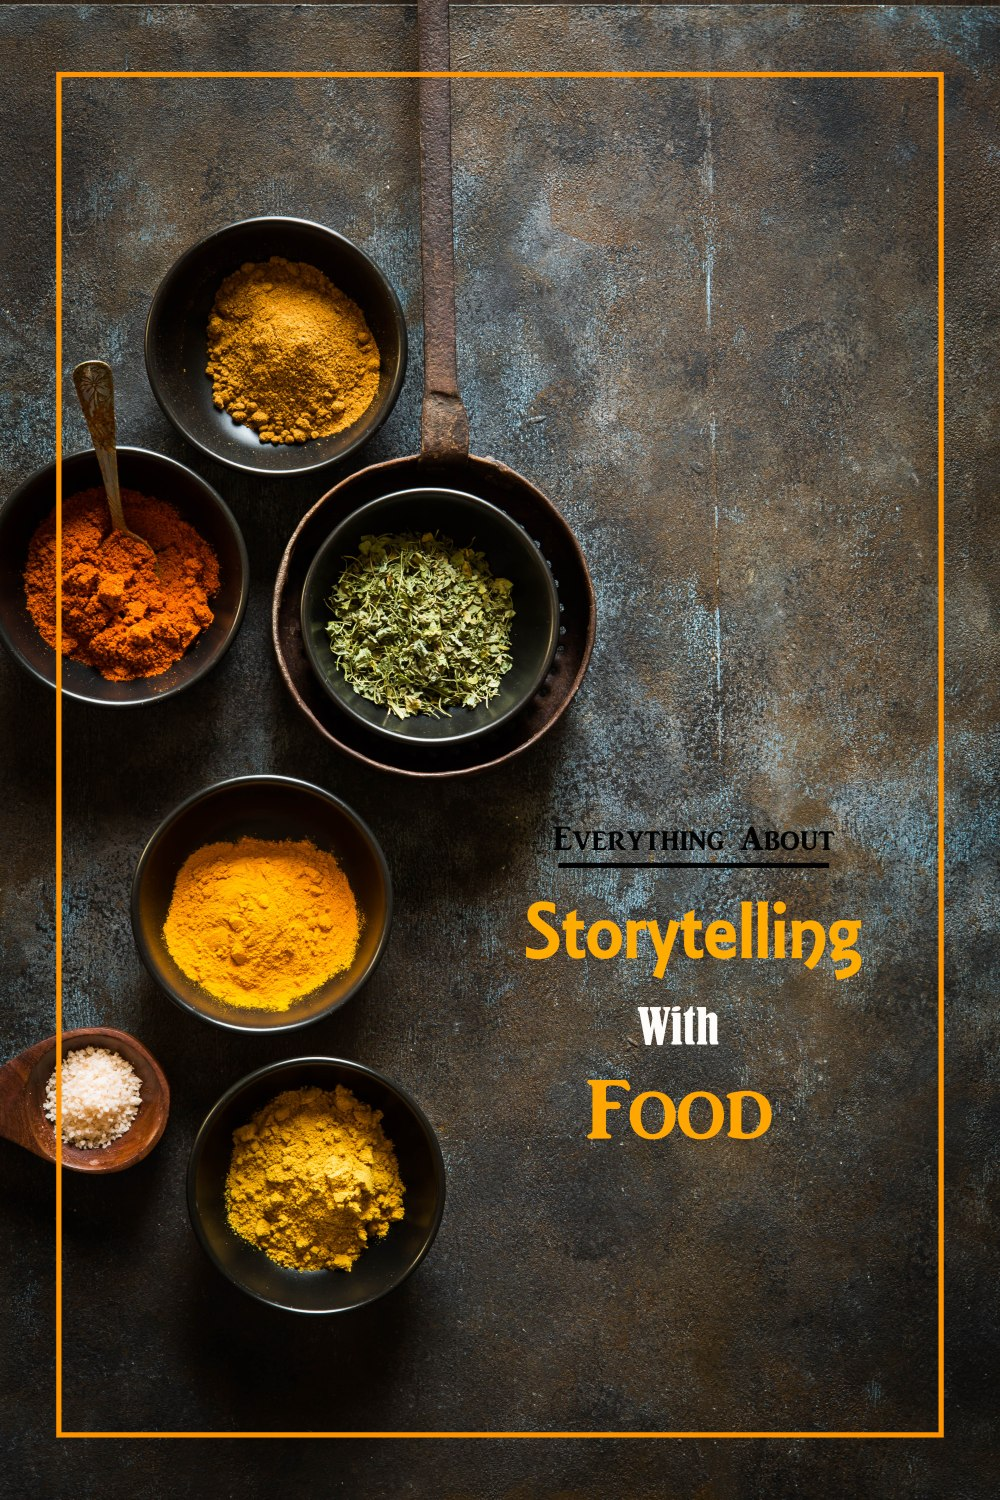 Storytelling with Food